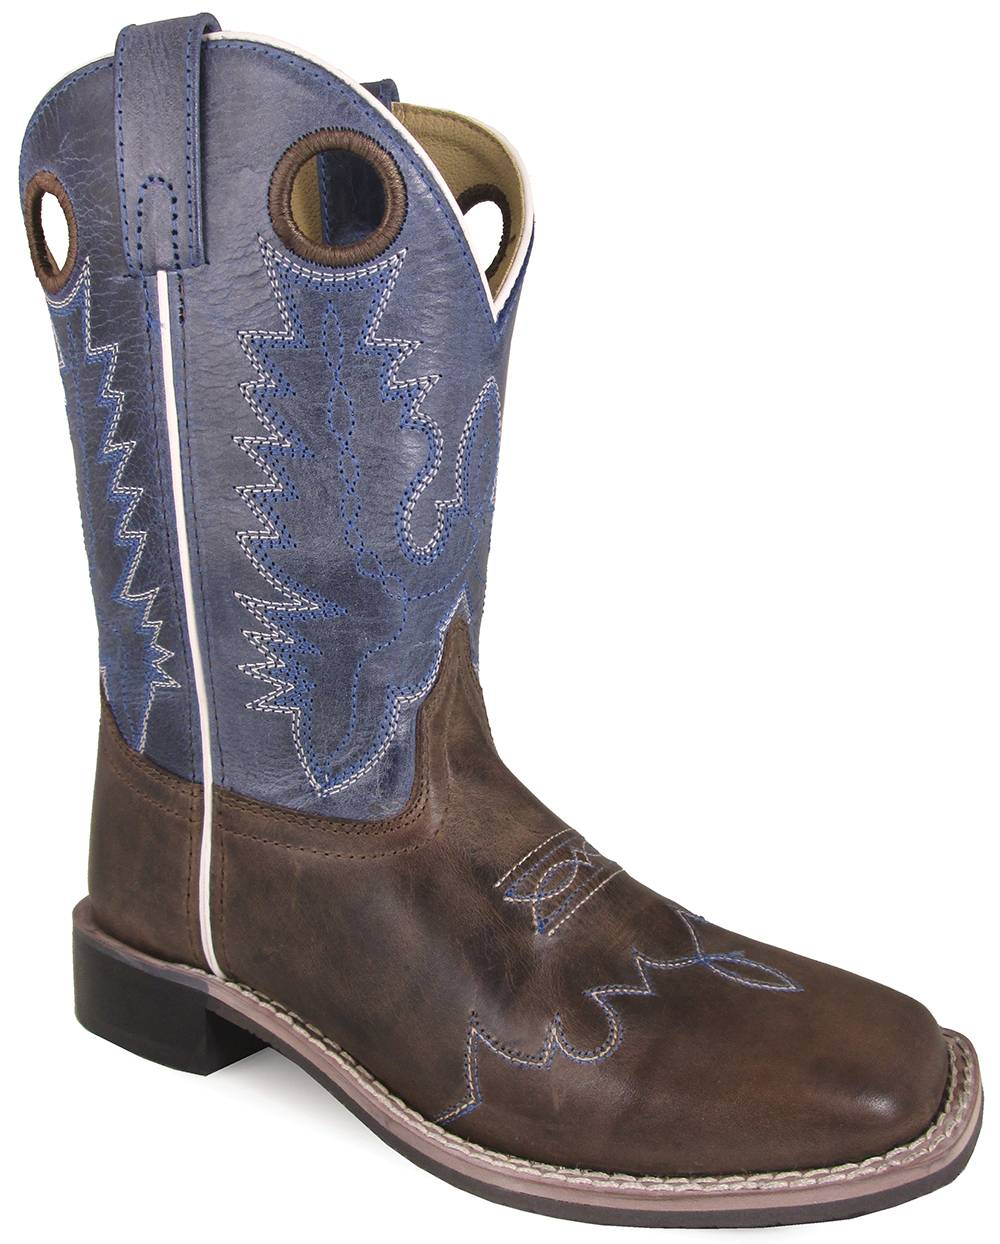 Smoky Mountain Childrens Delta Leather Square Toe Boots - Brown/Blue Crackle